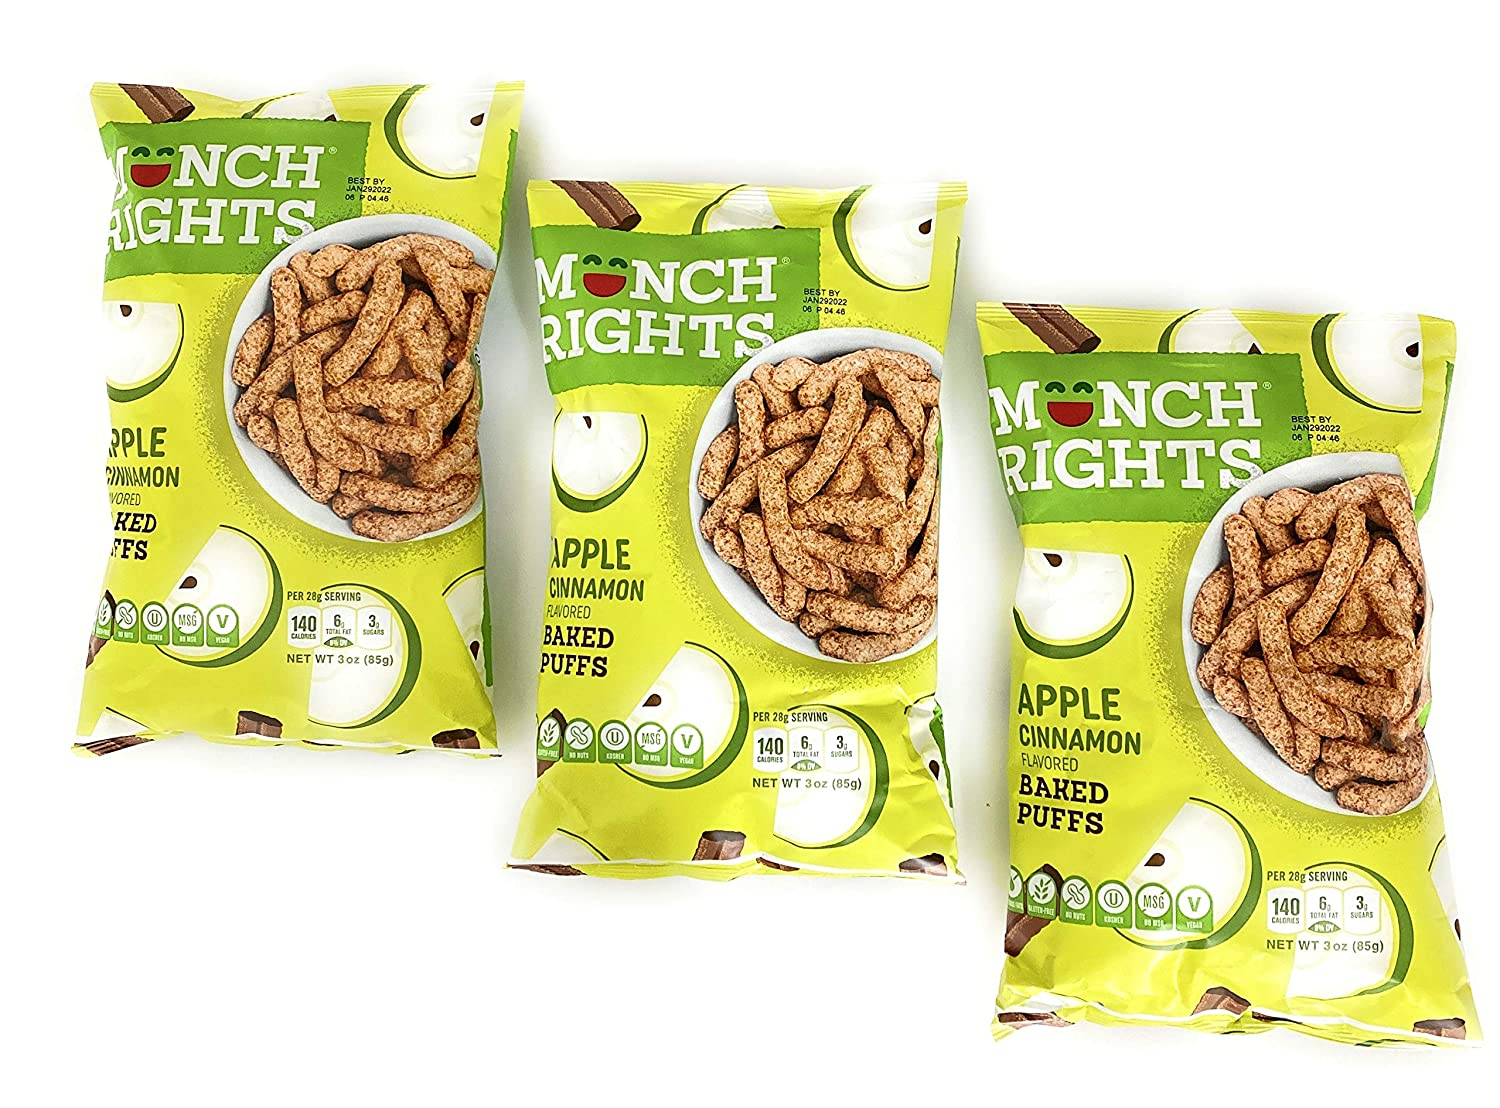 Munch Rights Apple Cinnamon Flavored Baked Puffs Vegan Gluten Free Nut Free Kosher No MSG A Better Snack Is Born 3 Packs x 3 oz Bag